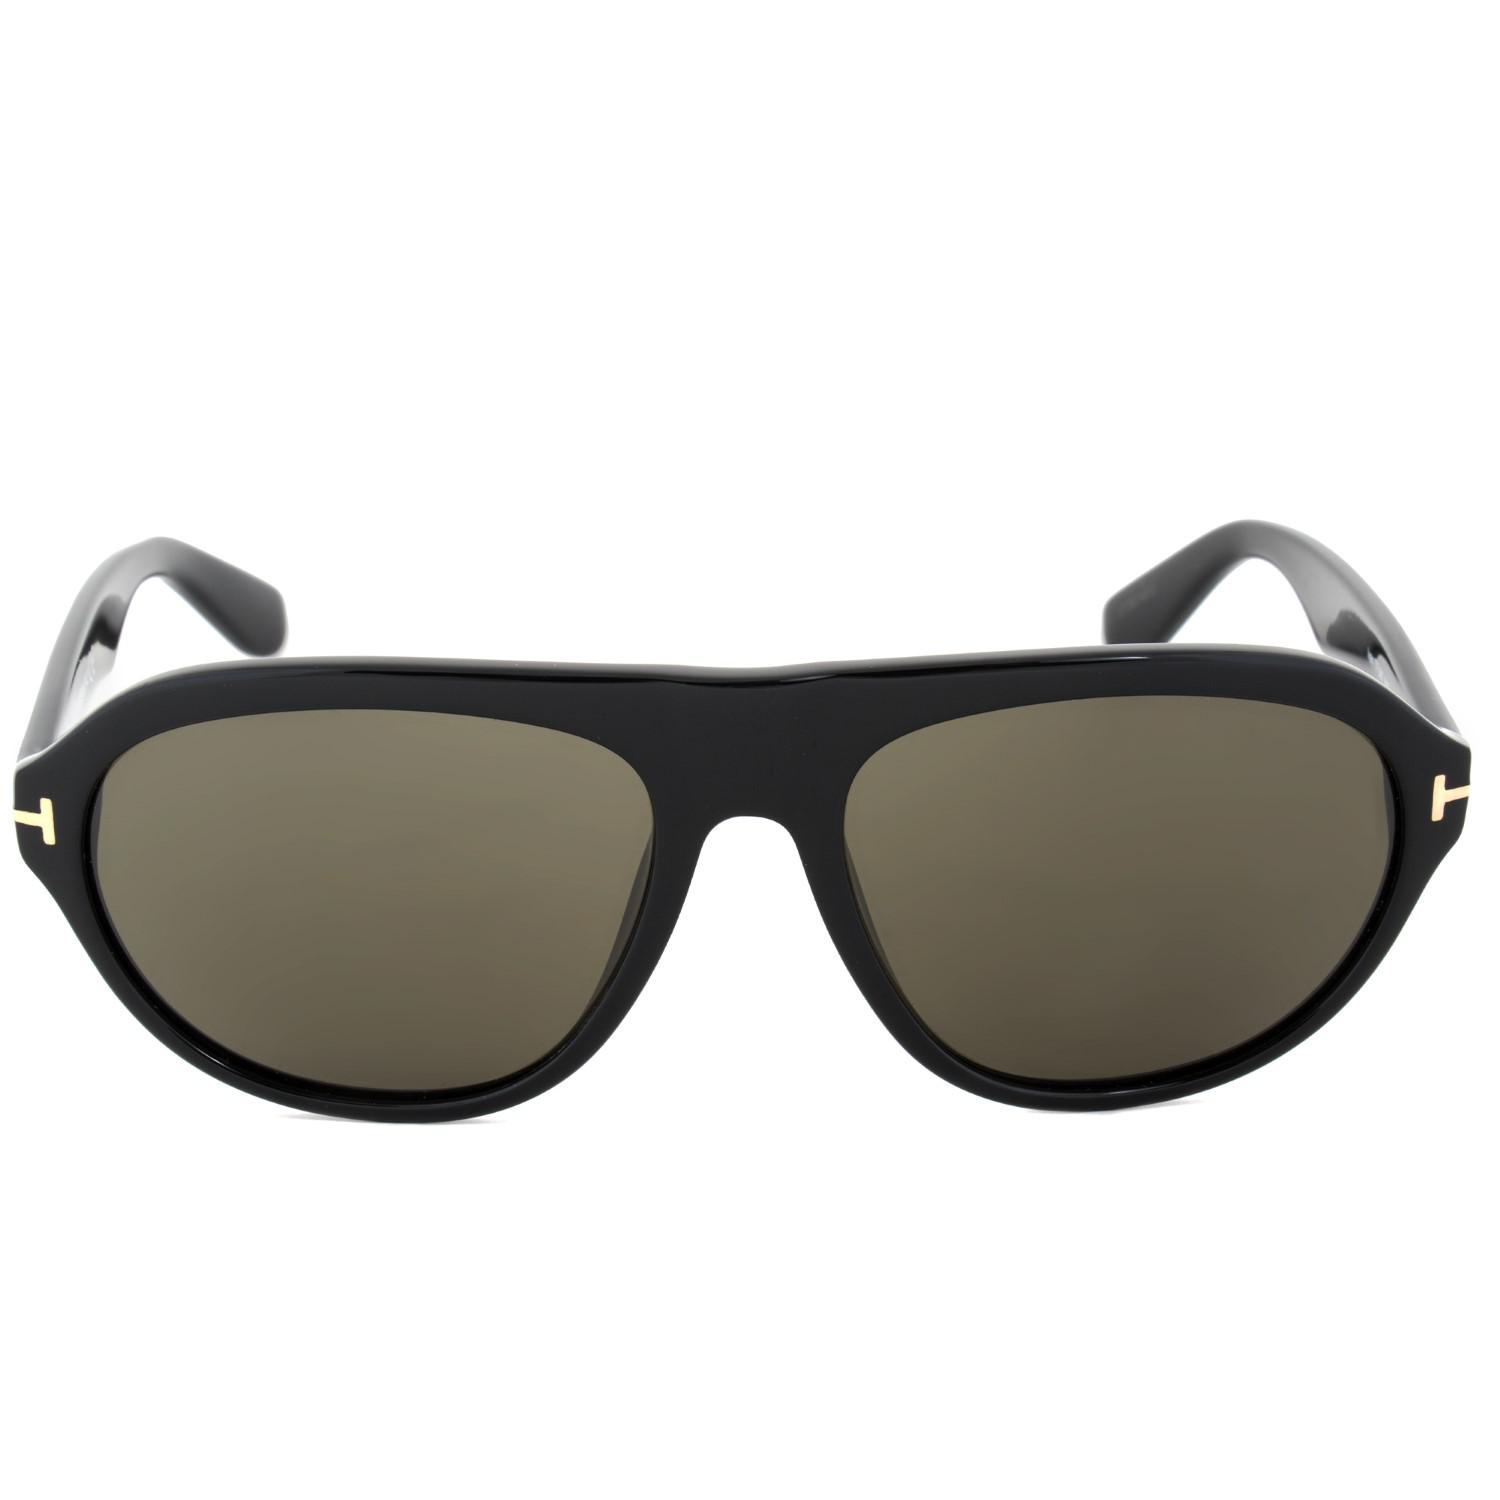 e5ab6fa6a5cd Lyst - Tom Ford Oval Sunglasses Tf397 Ivan 01n Ft0397 in Black - Save 3%